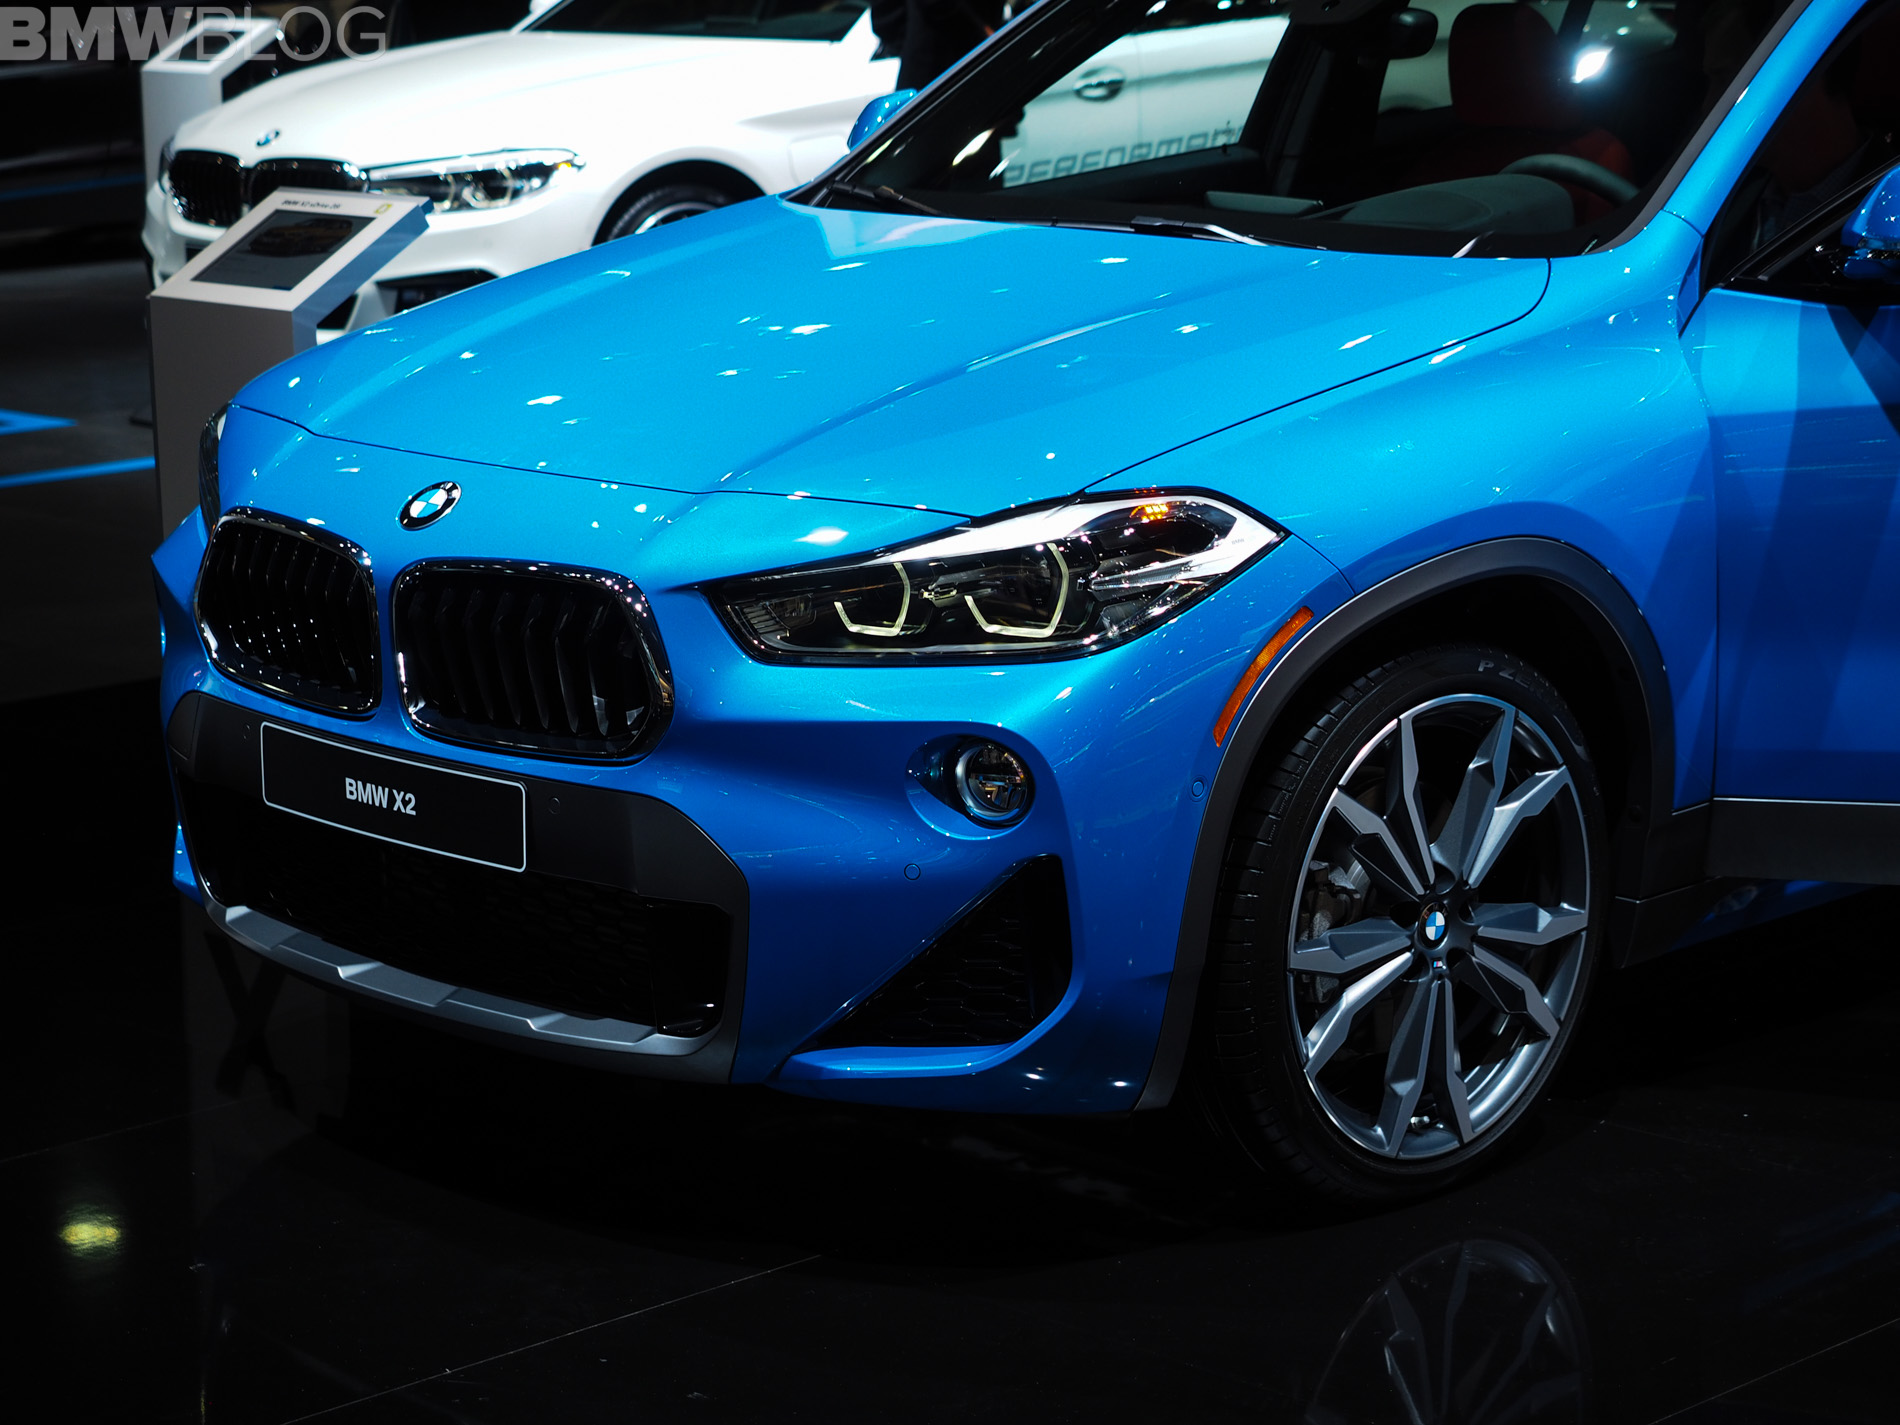 2018 Detroit Auto Show Bmw X2 In Misano Blue